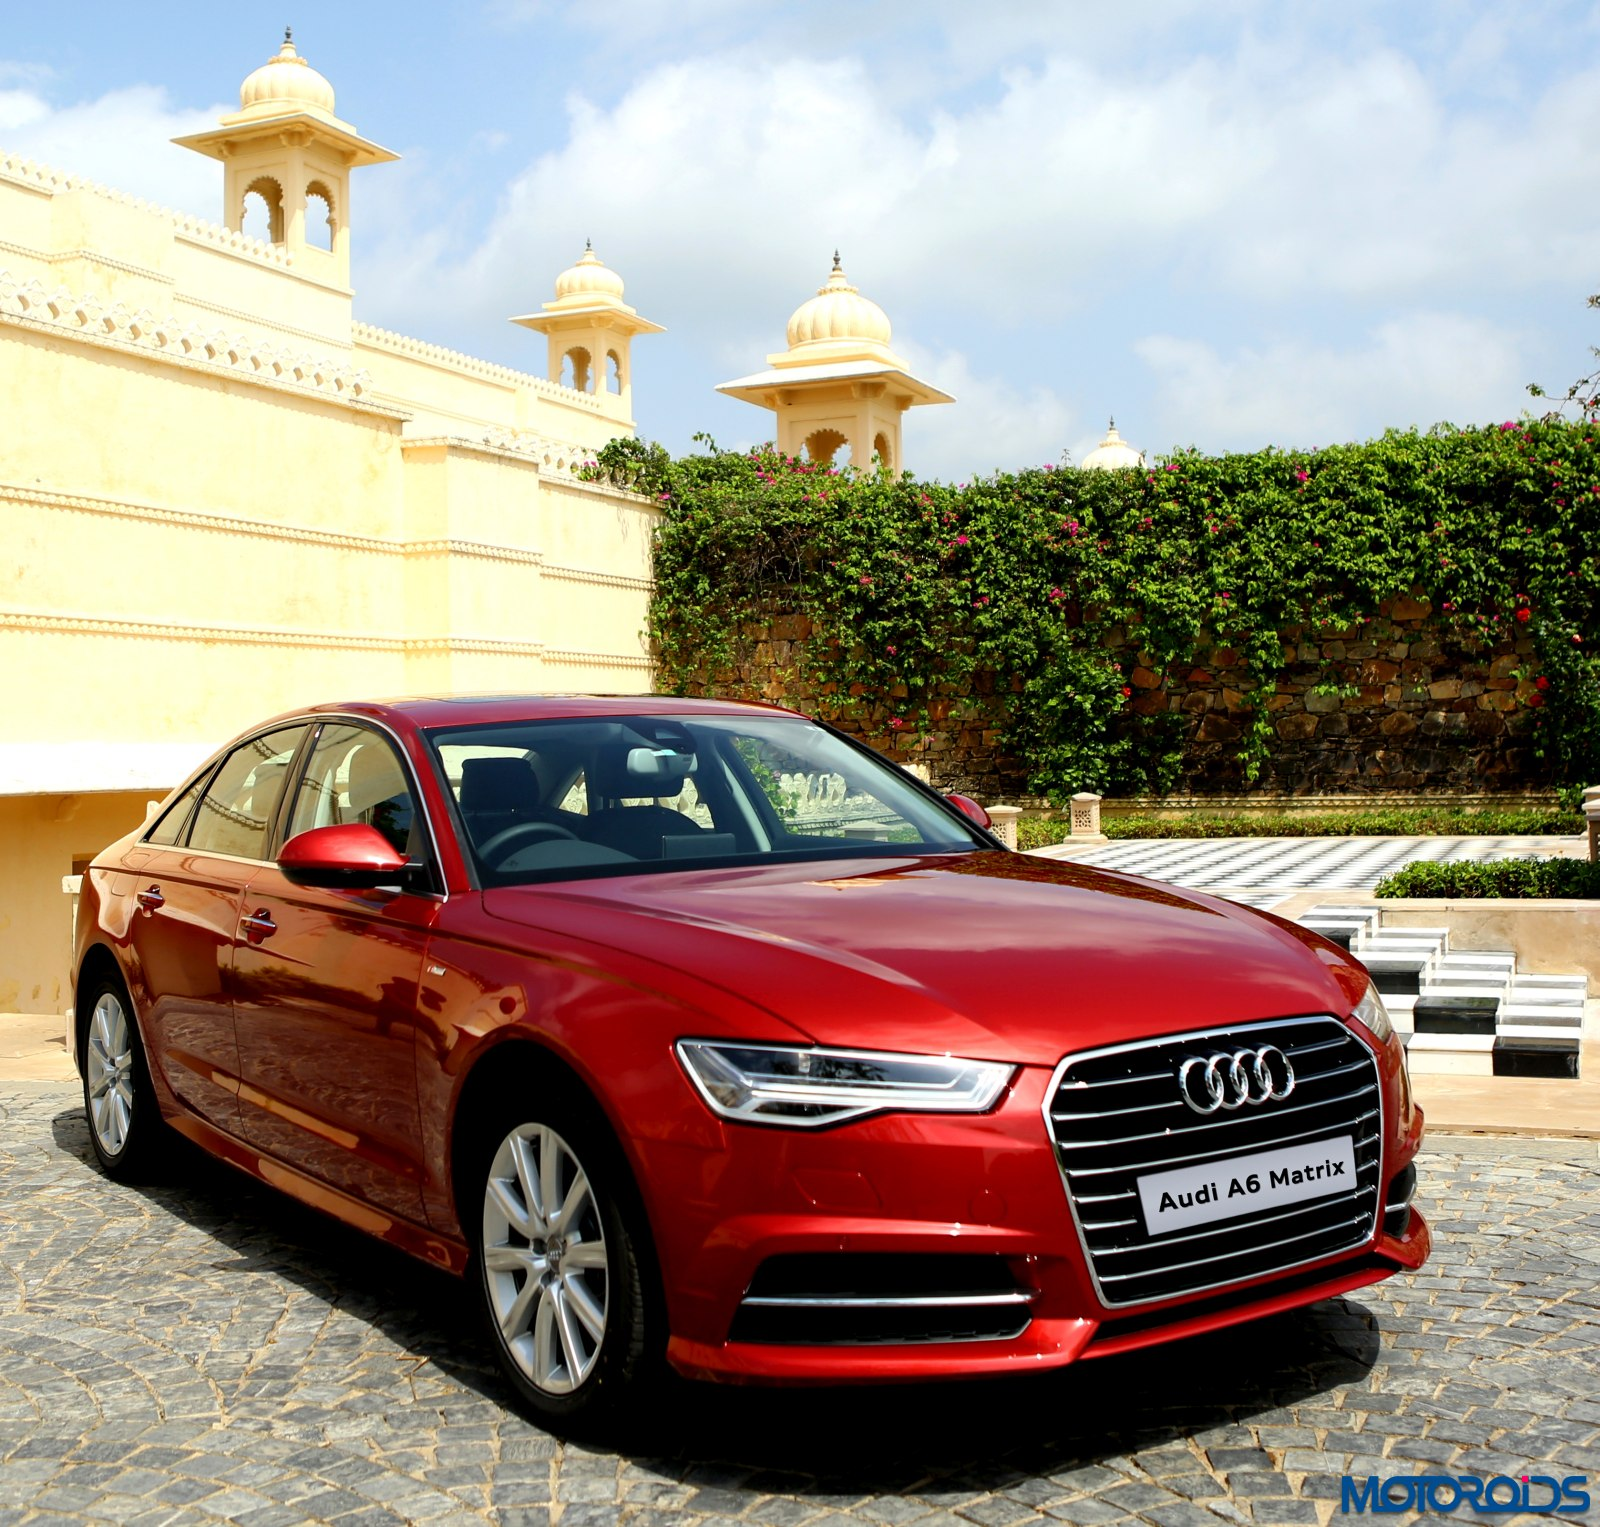 2015 Audi A6 Matrix 35TDI Facelift Review: The Blue Pill